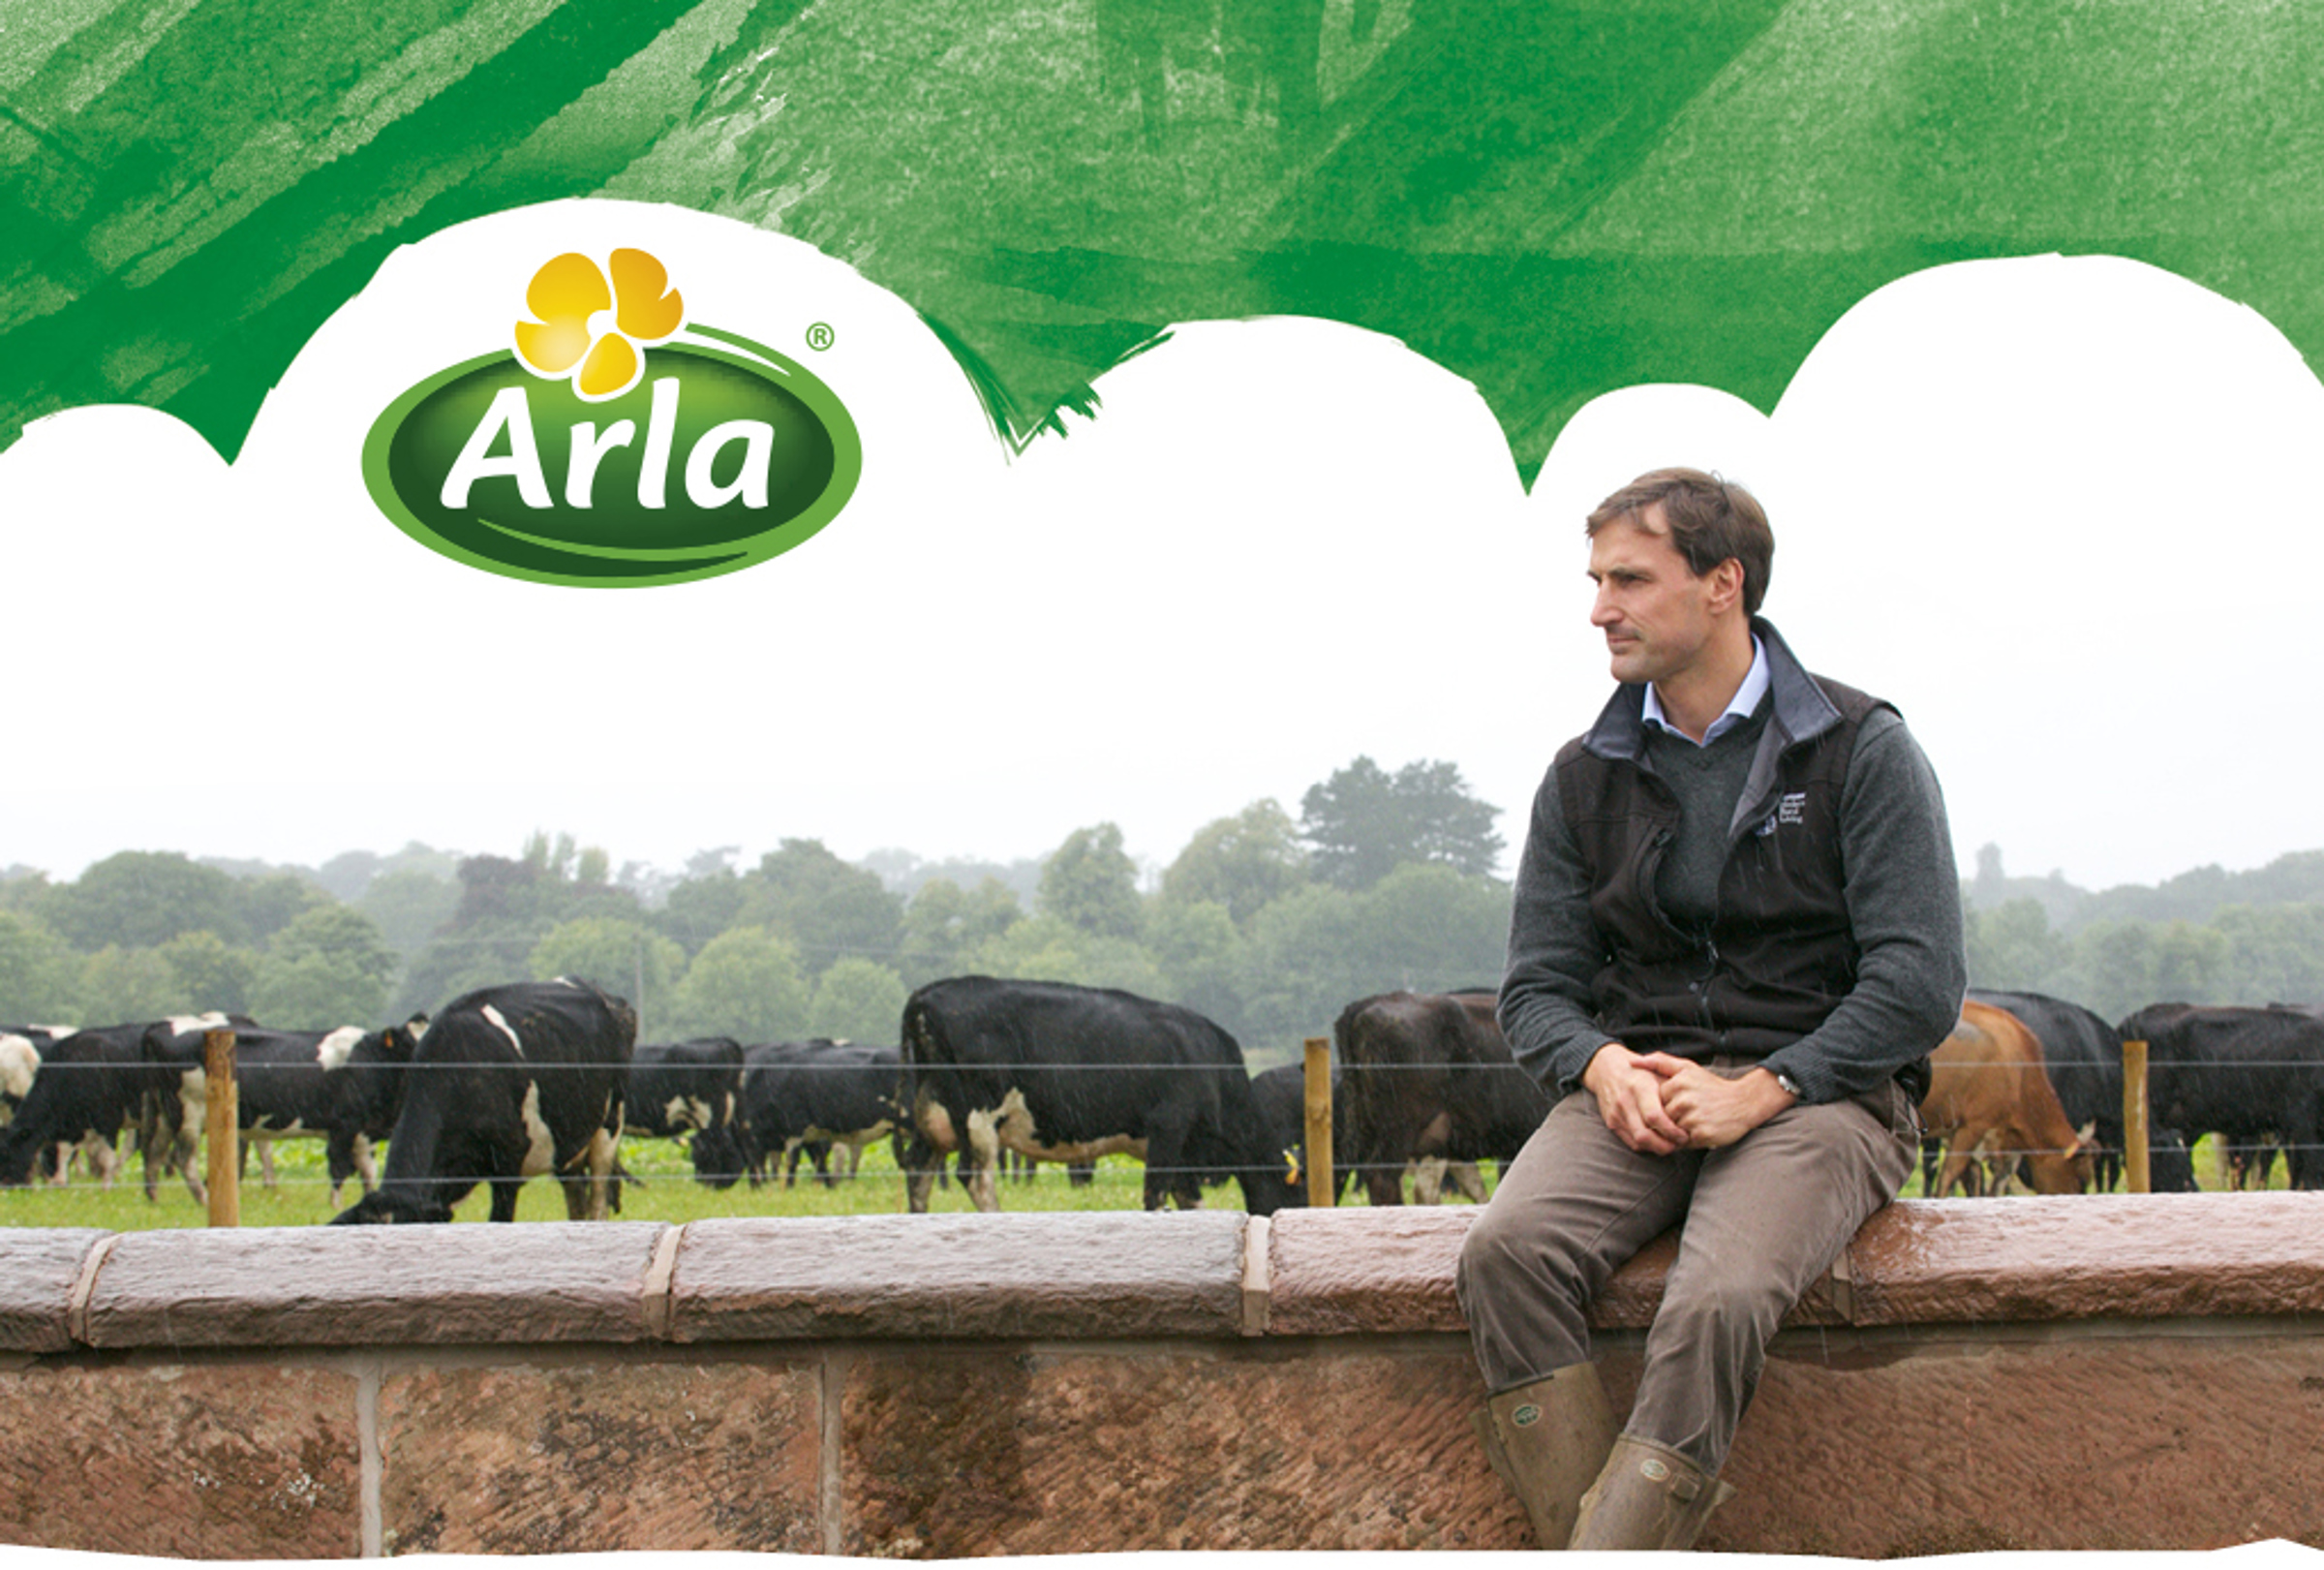 An Arla farmer sat on a wall in front of cows with the Arla logo overlaid on top